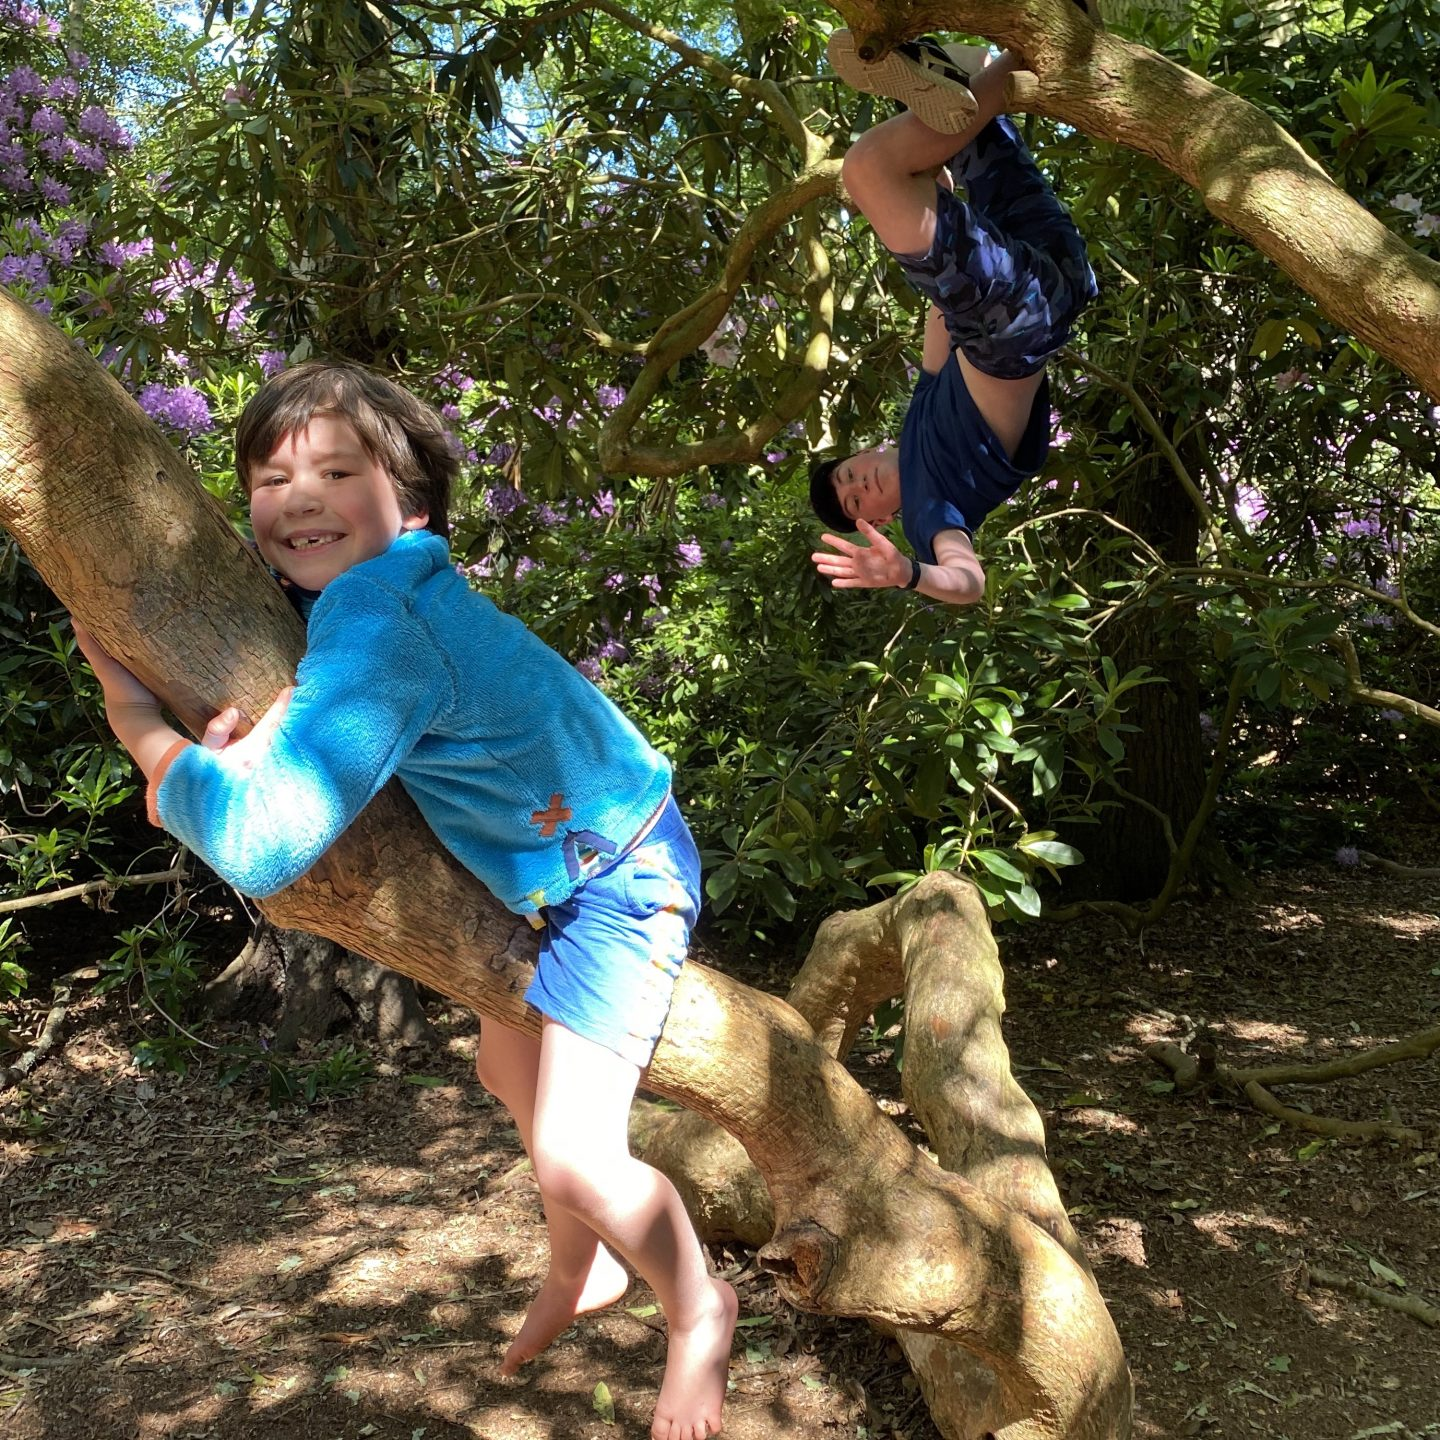 Picnic time with 2 boys climbing a tree